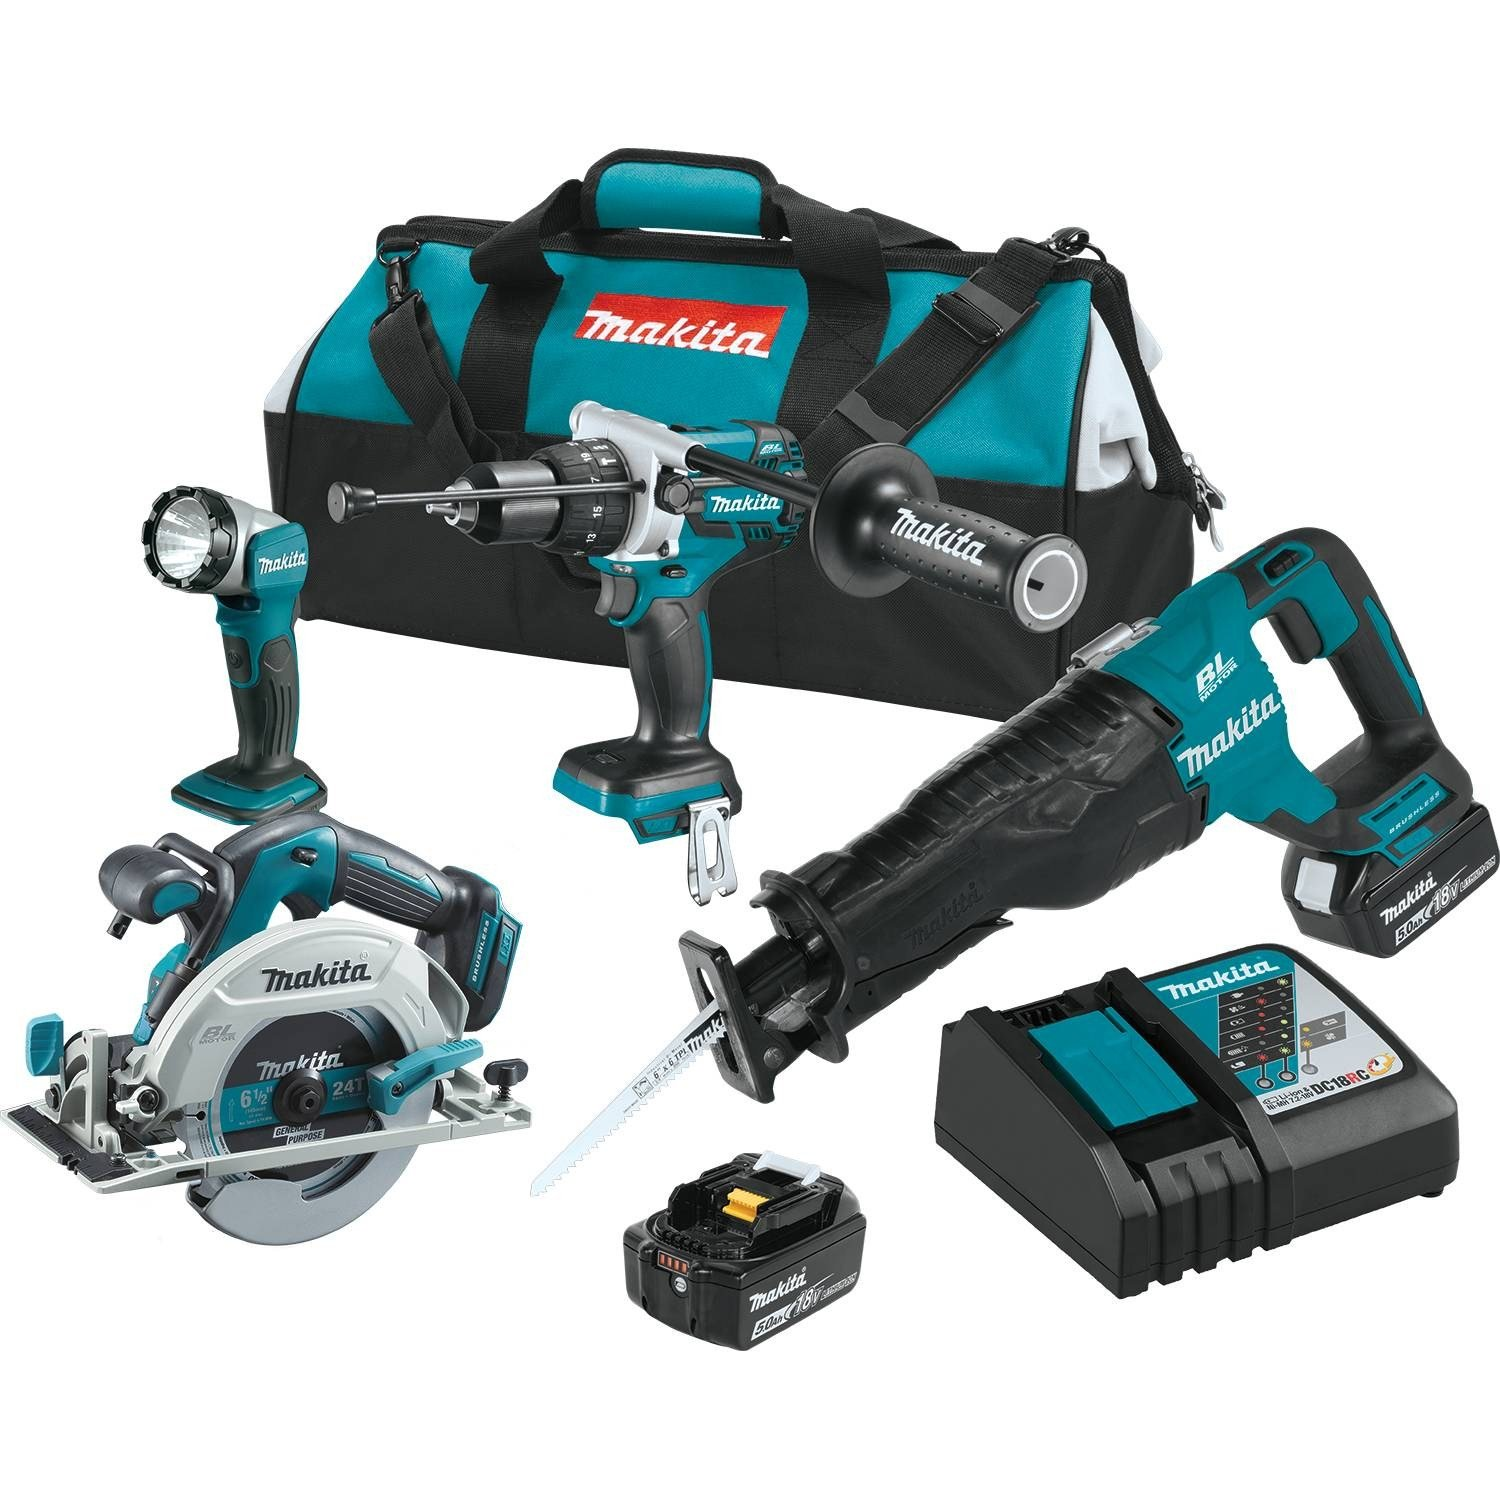 71FfIDvCwbL._SL1500_ Bosch vs Makita: Which Demolition Hammer Is Best?